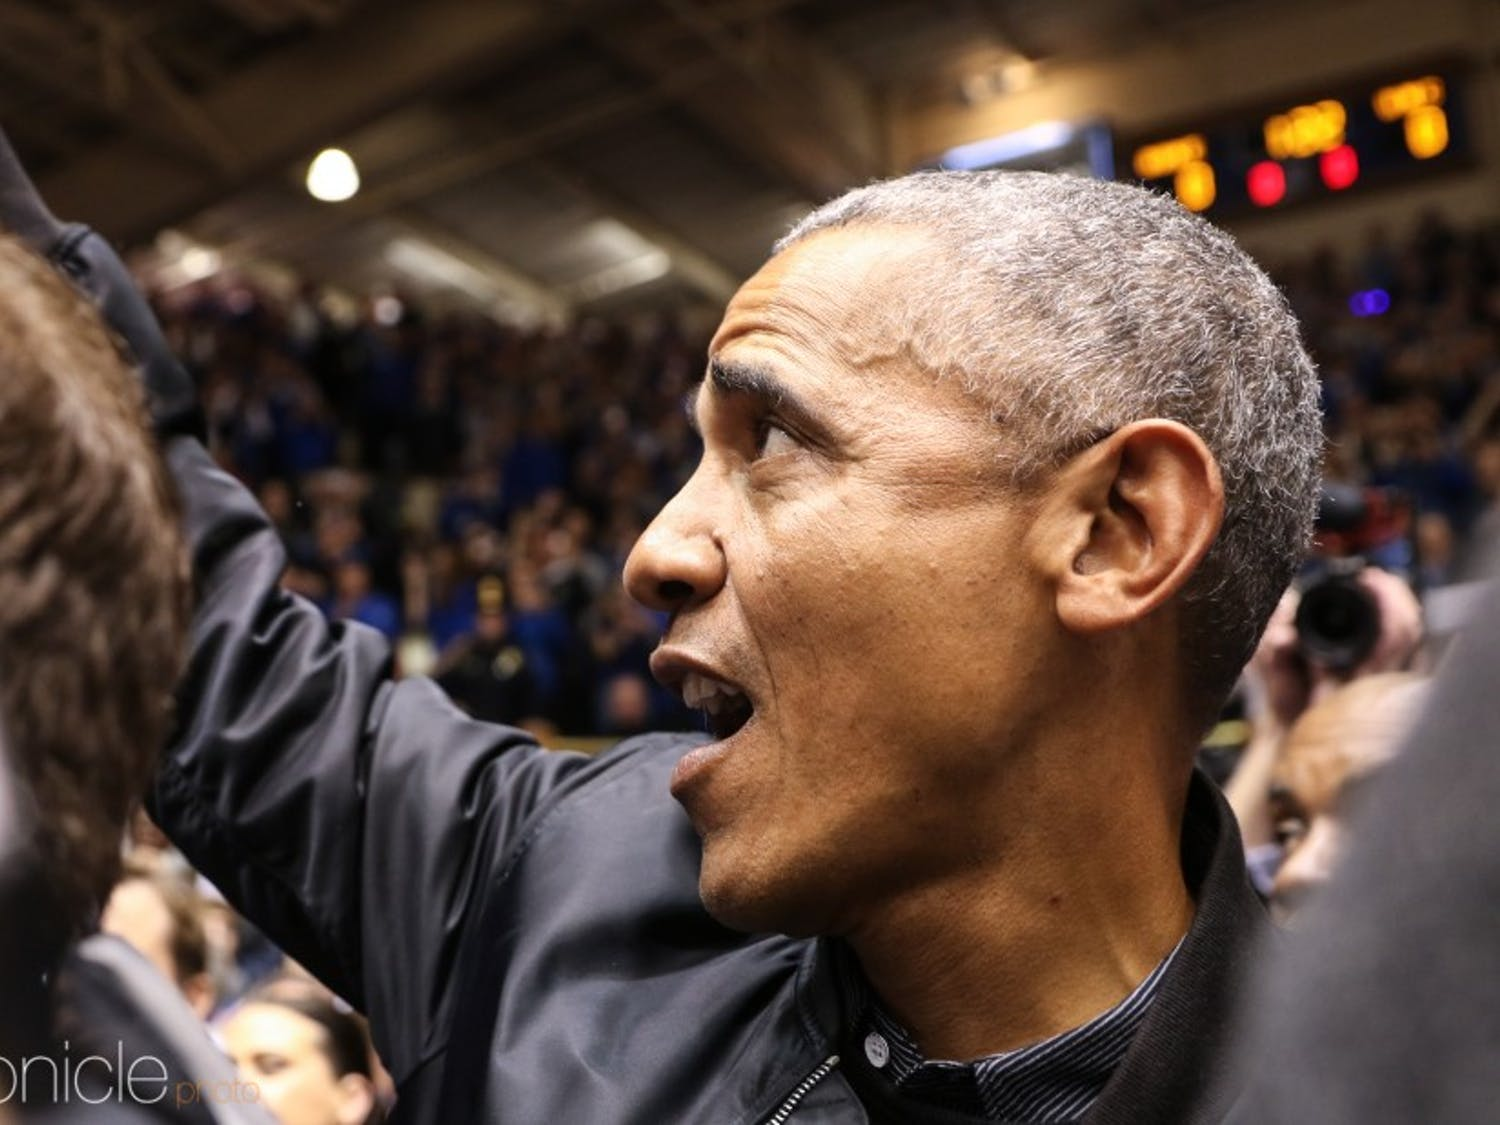 After four years with the Chronicle's Photography department, here are senior Sujal Manohar's favorite shots. A Neuroscience and Visual Arts major from Dallas, Sujal served as Photography Editor as a junior after her previous roles as Recess Photography Editor and Associate Photography Editor. Her favorite ChronPhoto moments are photographing Obama at Duke-UNC 2019 and covering the first round of the NCAA Tournament. Next year, she will be working at an arts nonprofit which serves people with disabilities in Austin, Texas. She would like to thank Carolyn, Sanjeev, Ian, and Bre for all their support over the years!